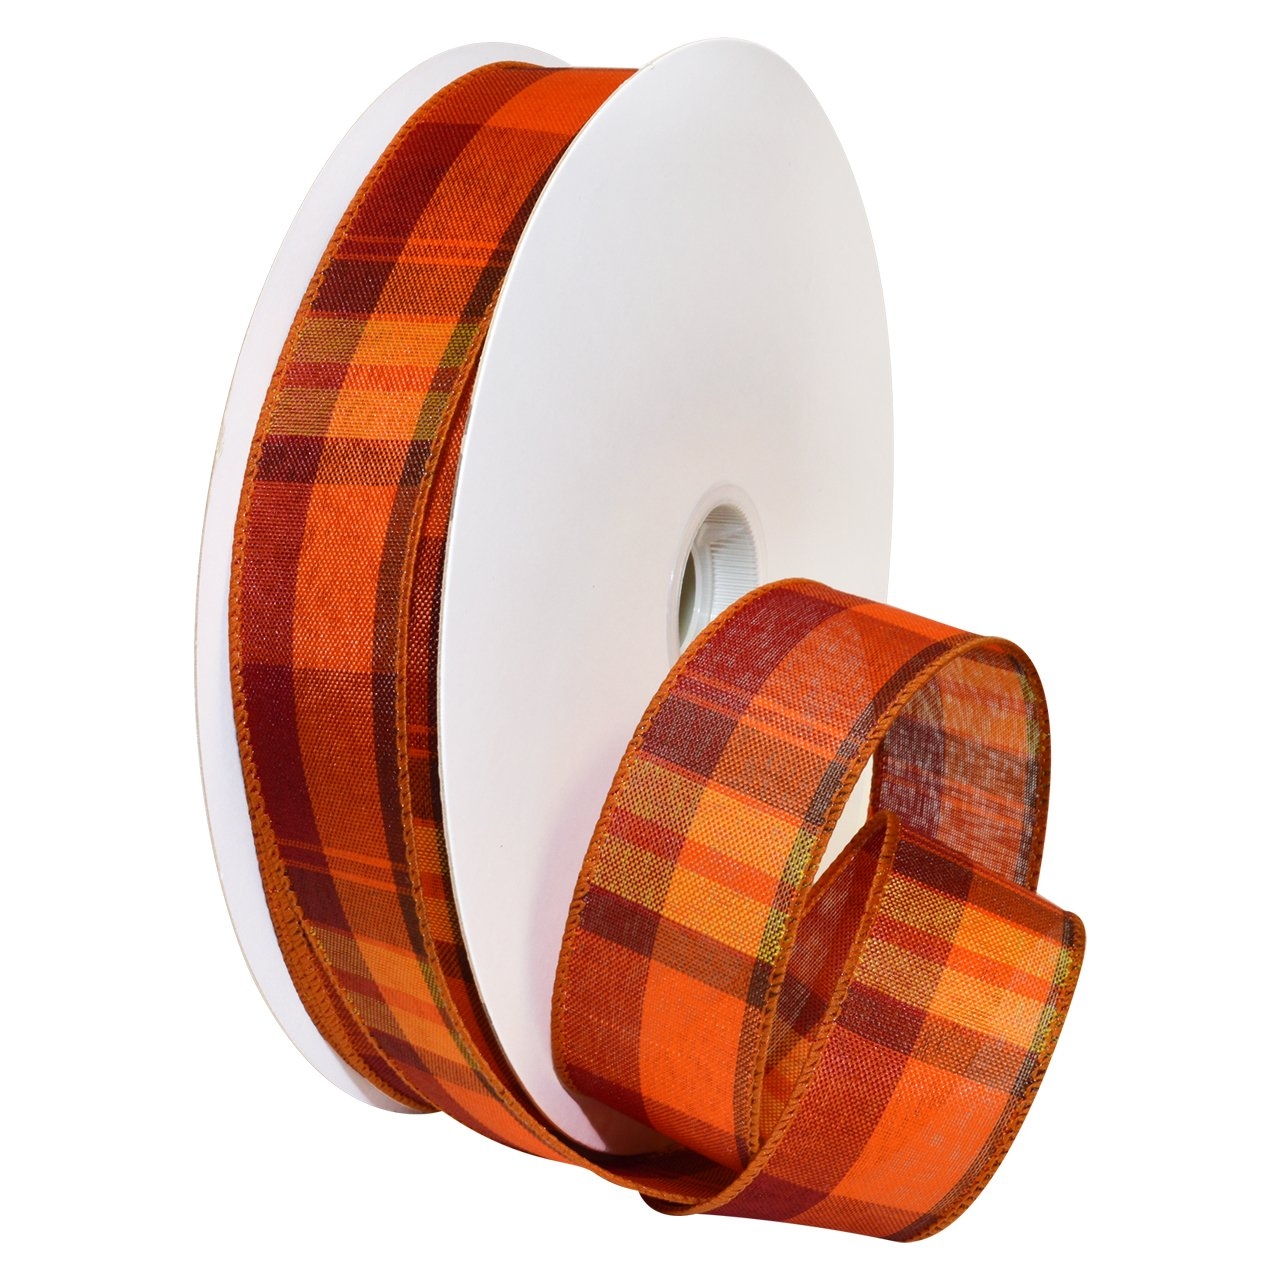 Morex Ribbon Autumn Hayride Plaid Wired Fabric Ribbon, Pumpkin, 2-1/2 In x 50-Yd Morex Corp. 7391.60/50-720